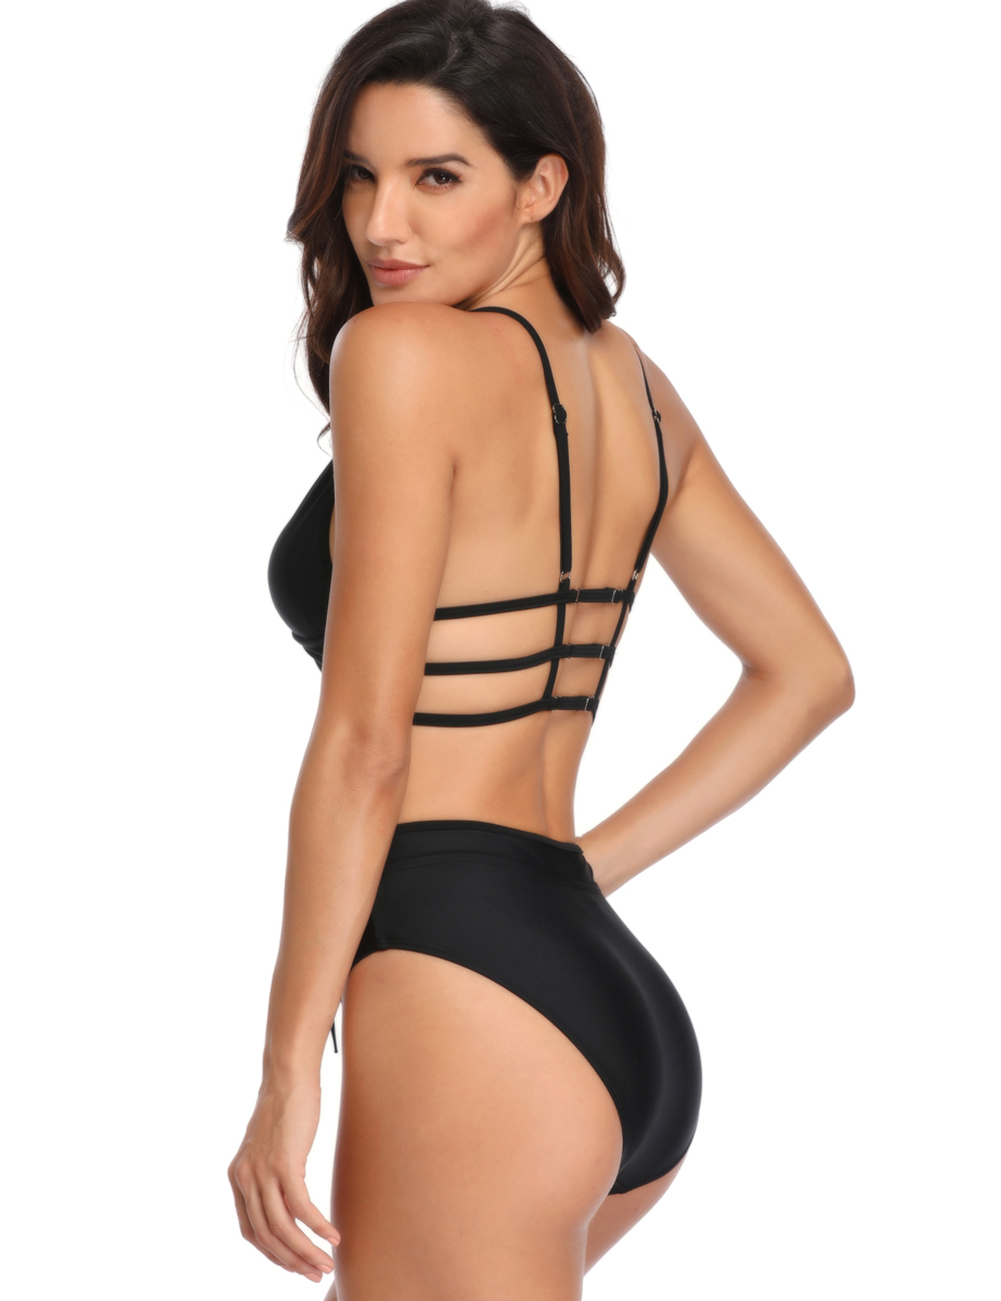 //cdn.affectcloud.com/hexinfashion/upload/imgs/Swimwear/Two_Piece_Swimsuit/F185119-BK1/F185119-BK1-201911065dc272651514e.jpg